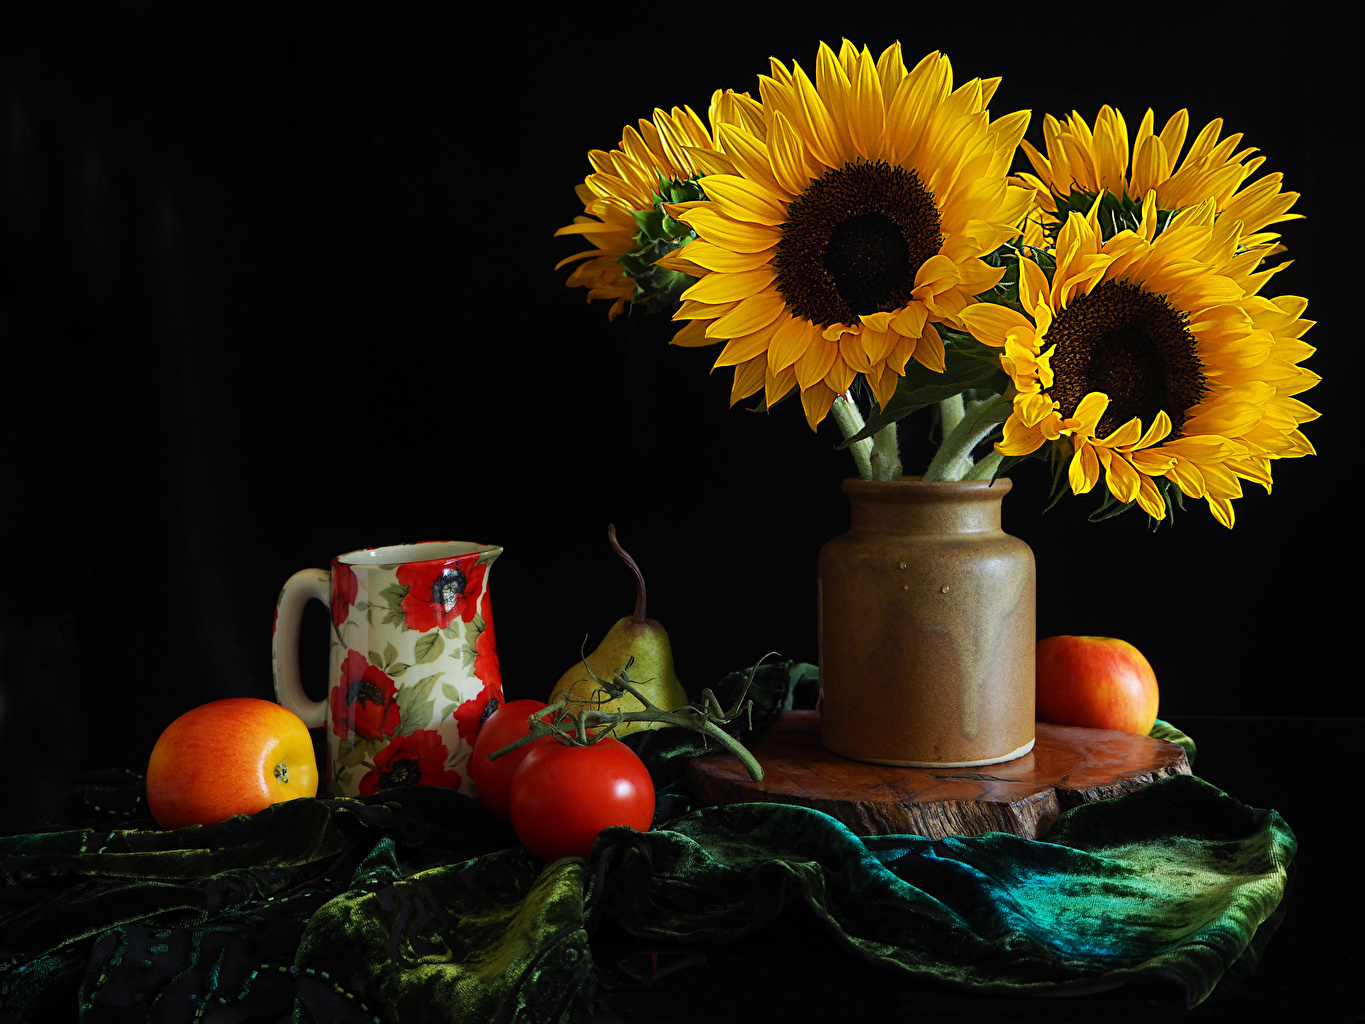 Photo Tomatoes Apples flower pitcher Sunflowers Vase Food Still-life Black background jugs Flowers Helianthus Jug container